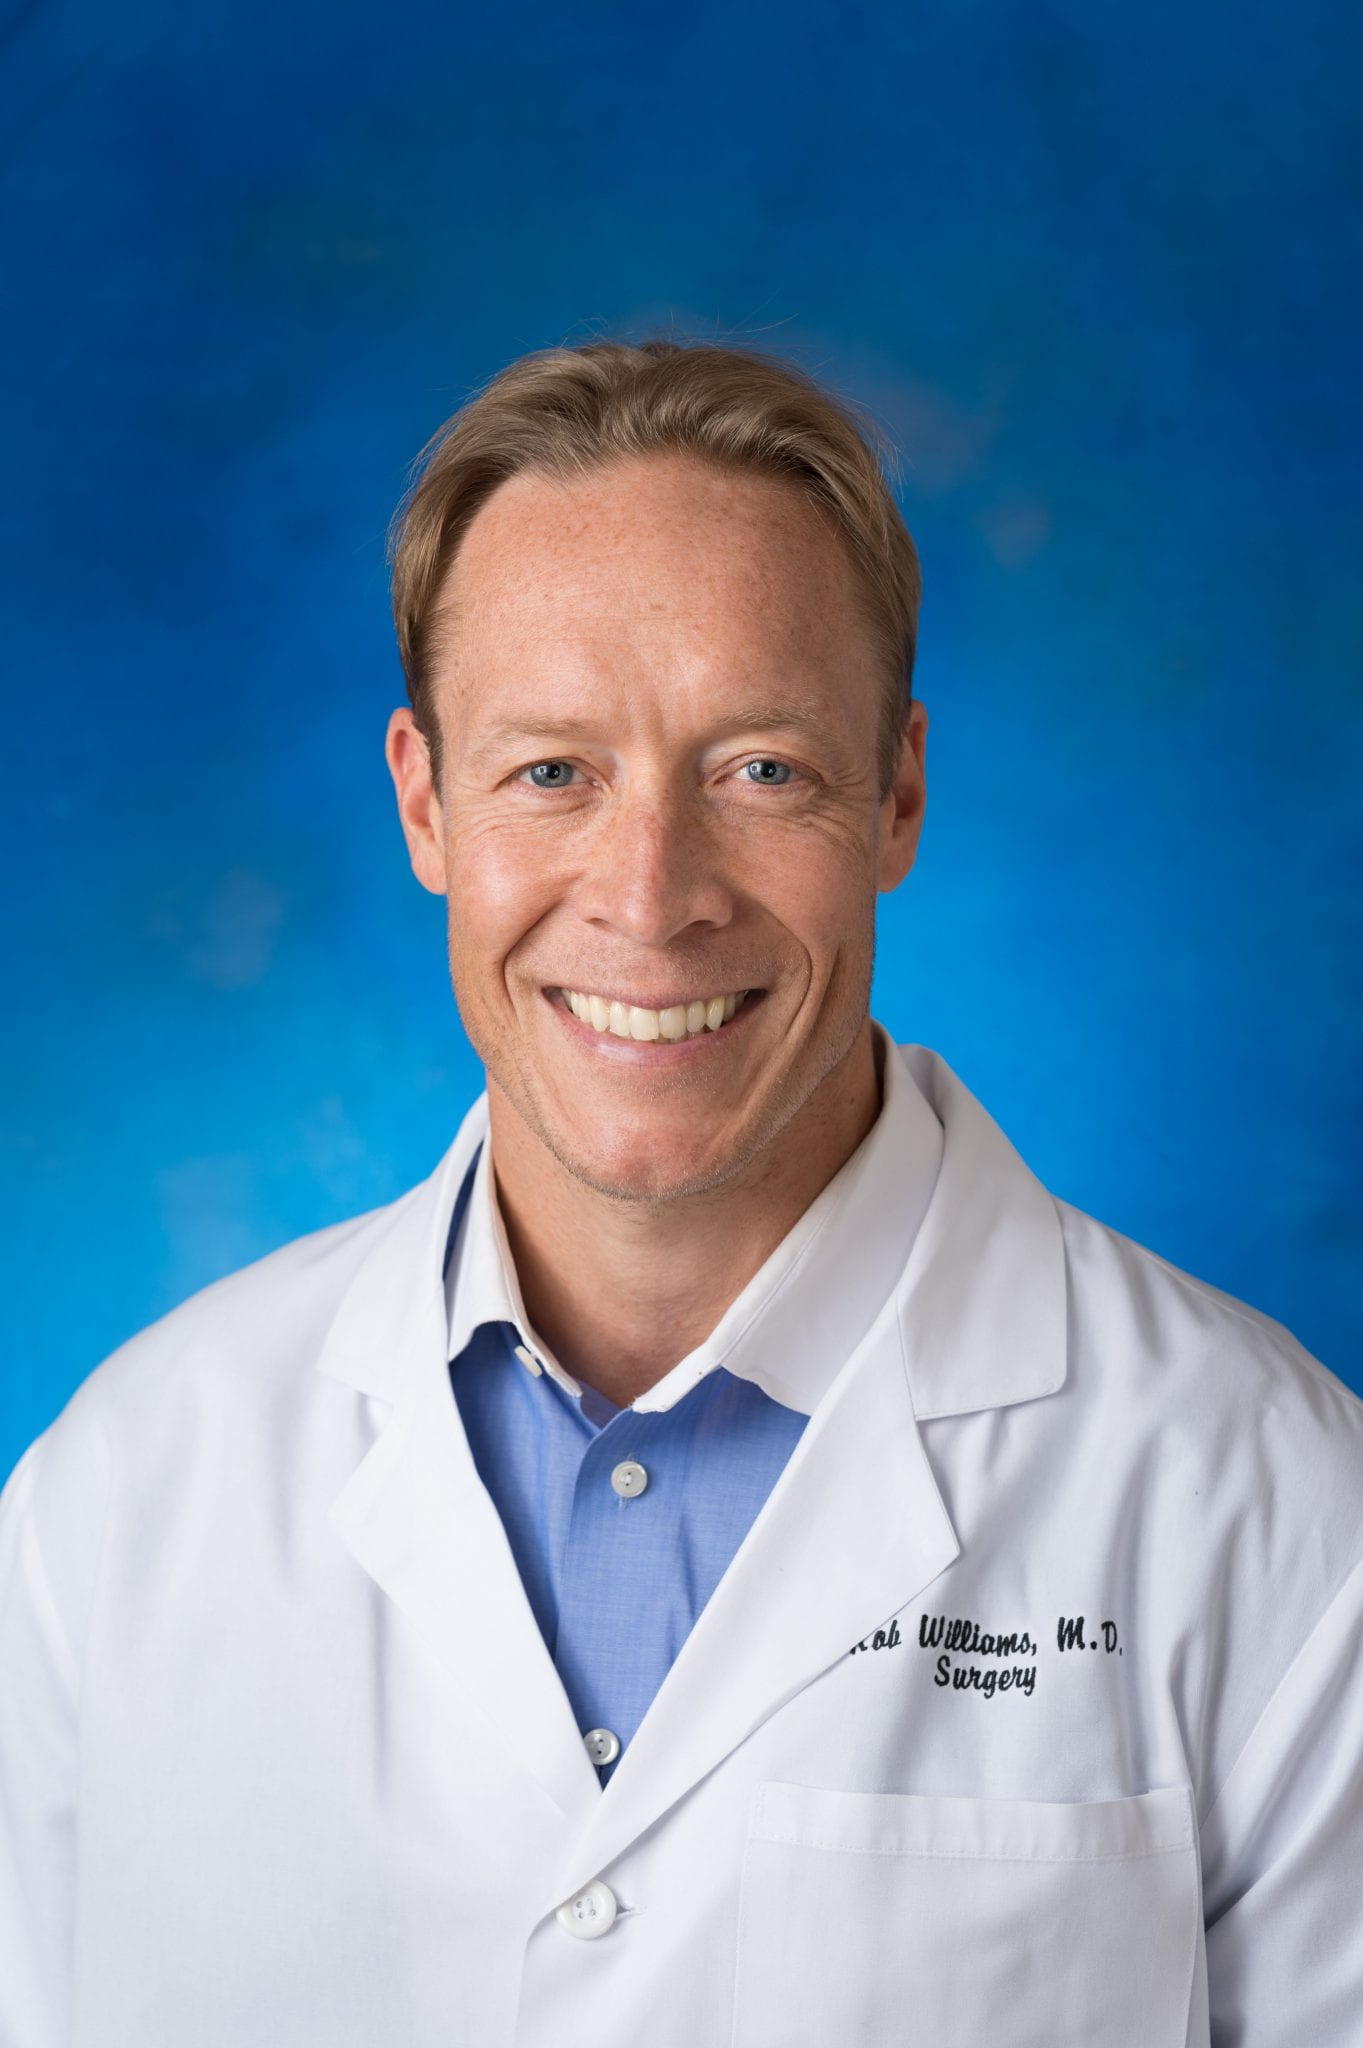 Dr Williams Leads Parkwest Center For Bariatric Surgery New Life Center For Bariatric Surgery